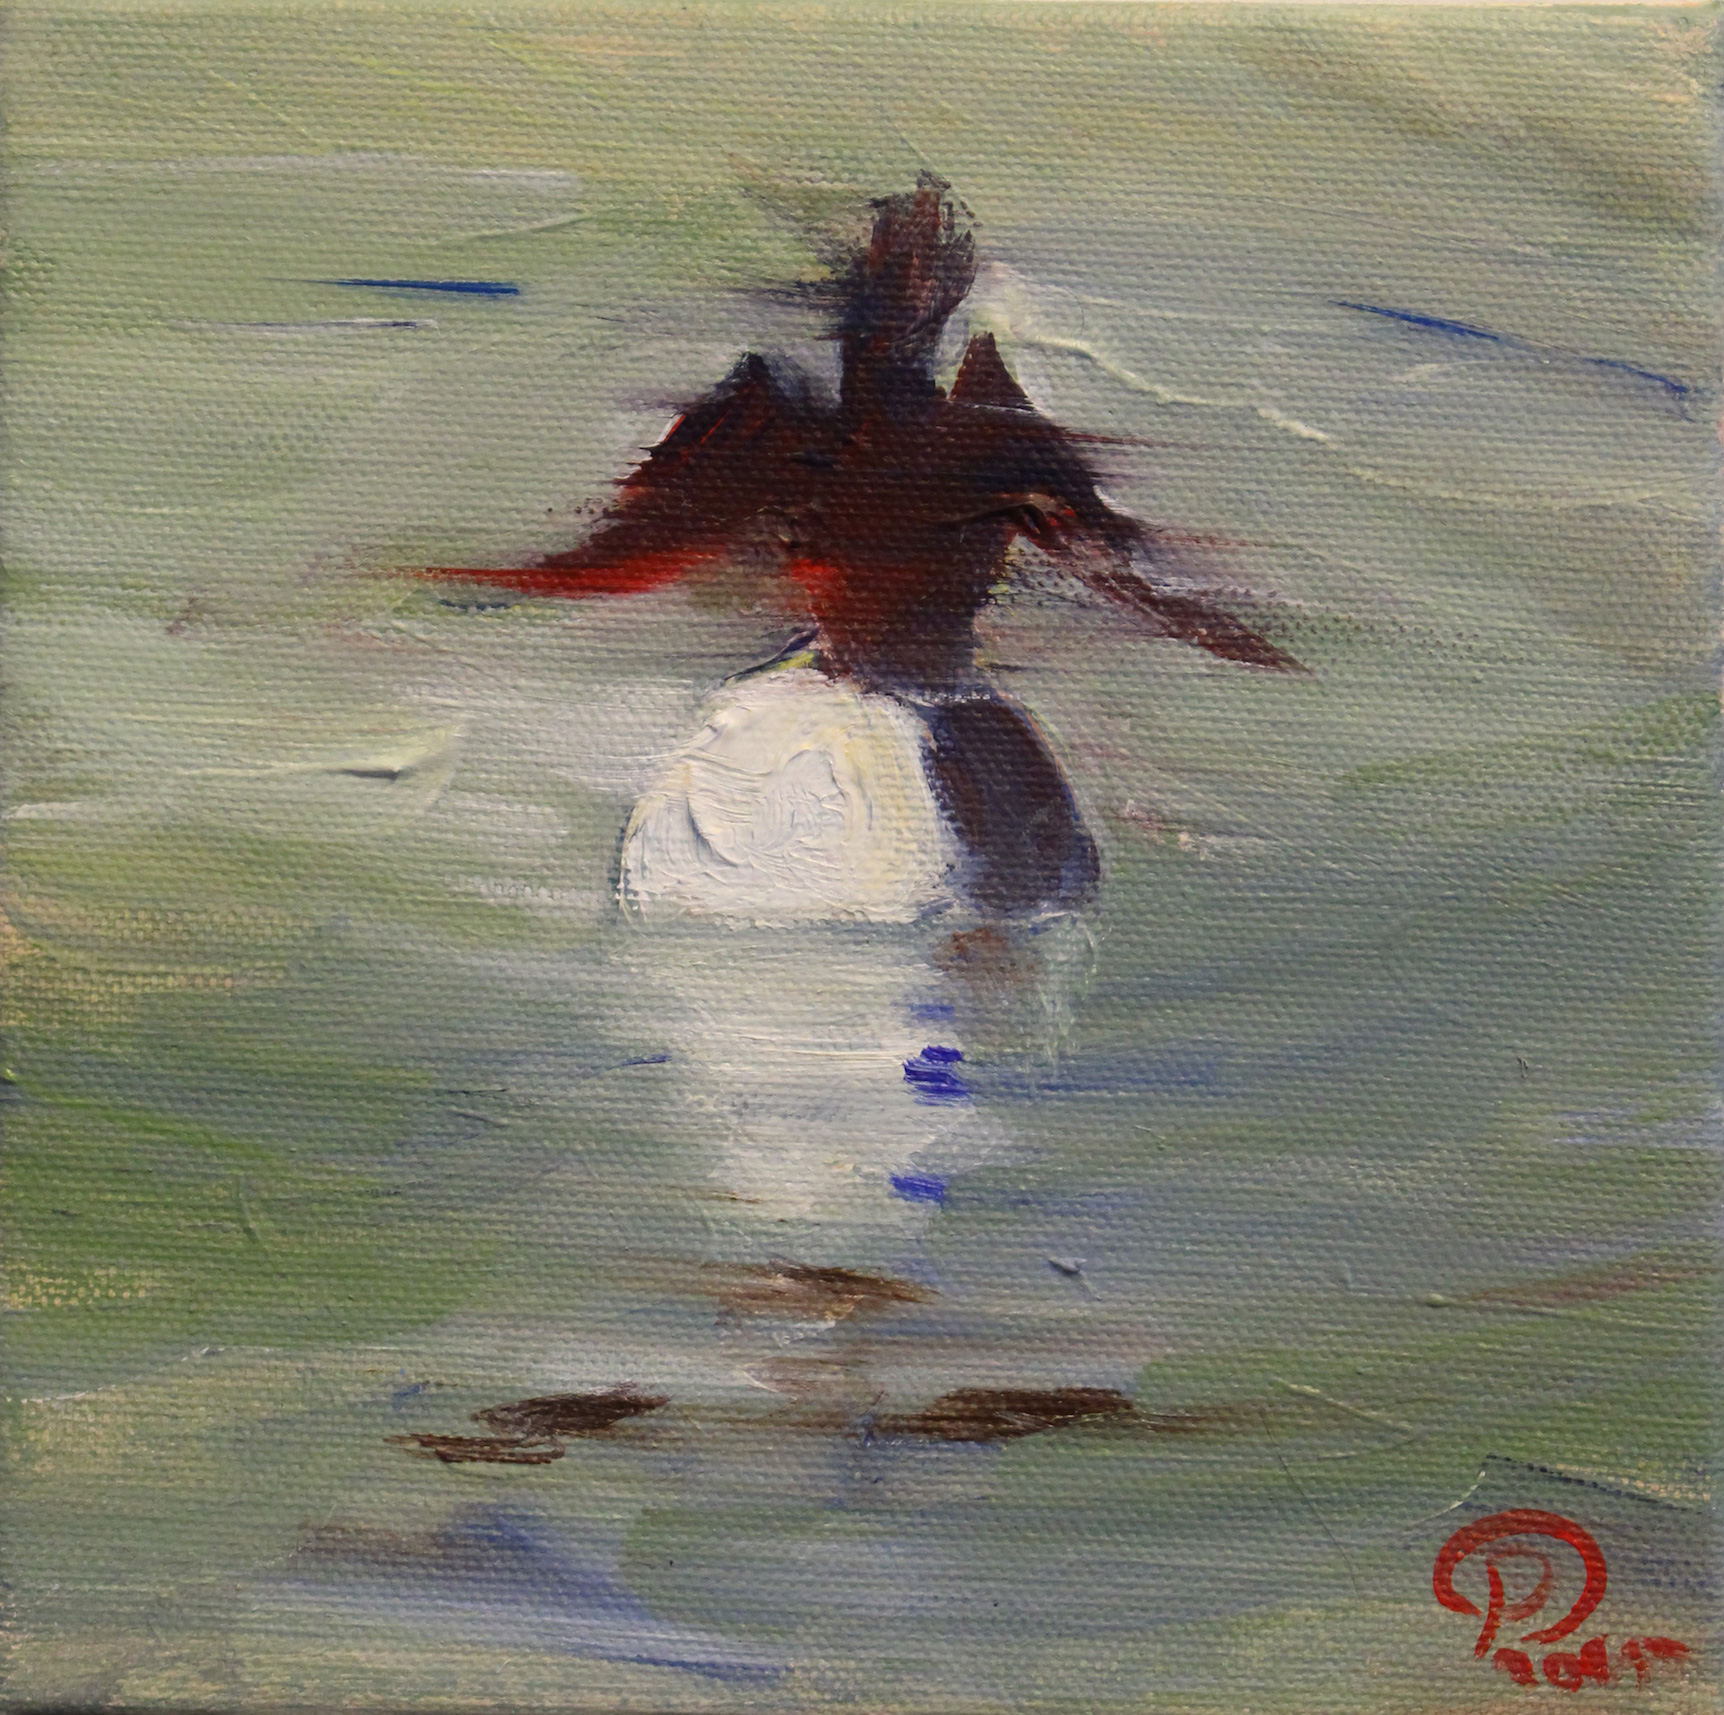 Cormorant on a Buoy 6x6 inches